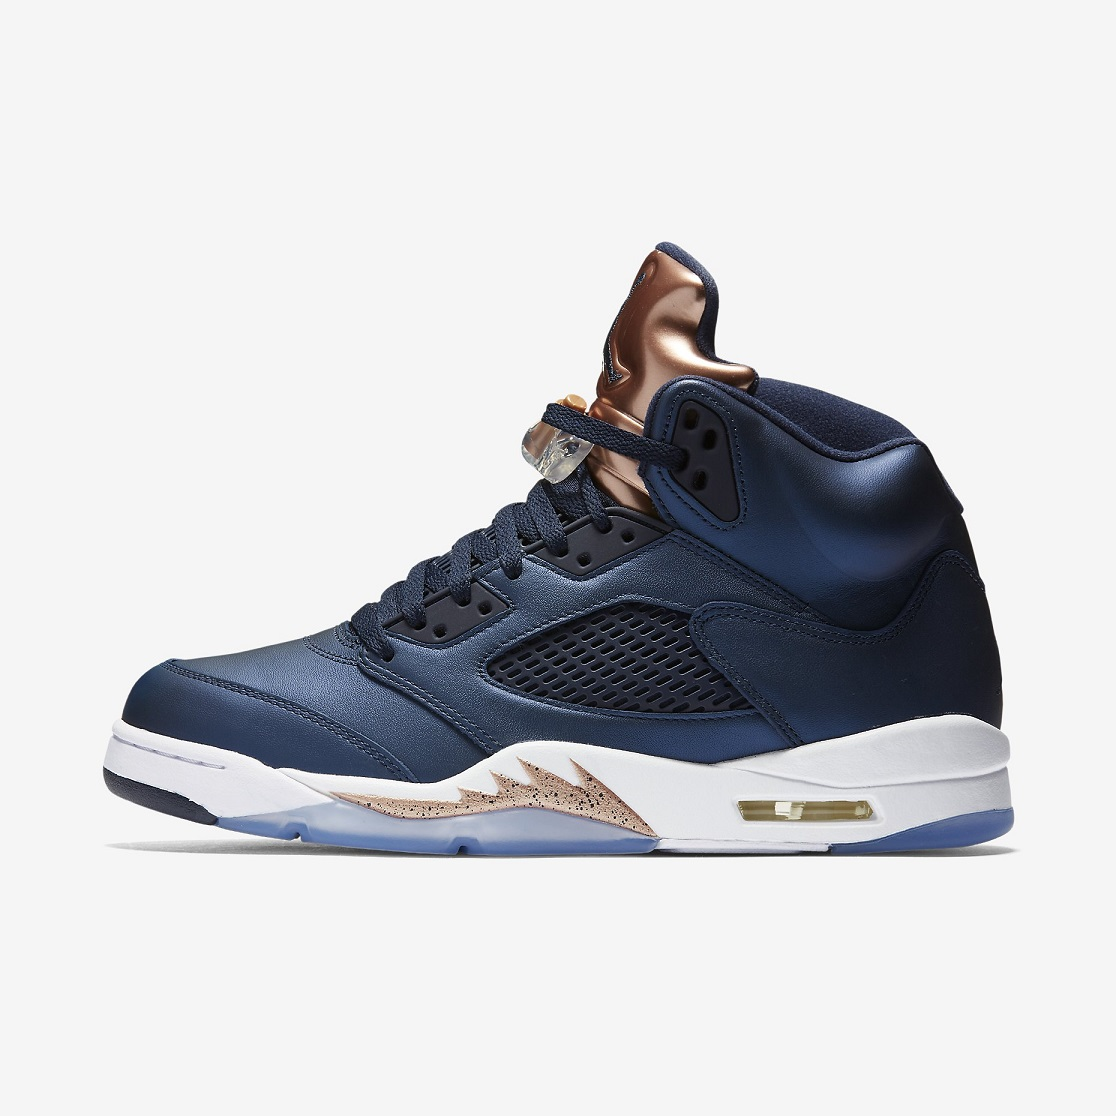 size 40 af3ce 2b3c4 60%OFF Air Jordan 5 Retro Mens Sneakers - Sneaker News